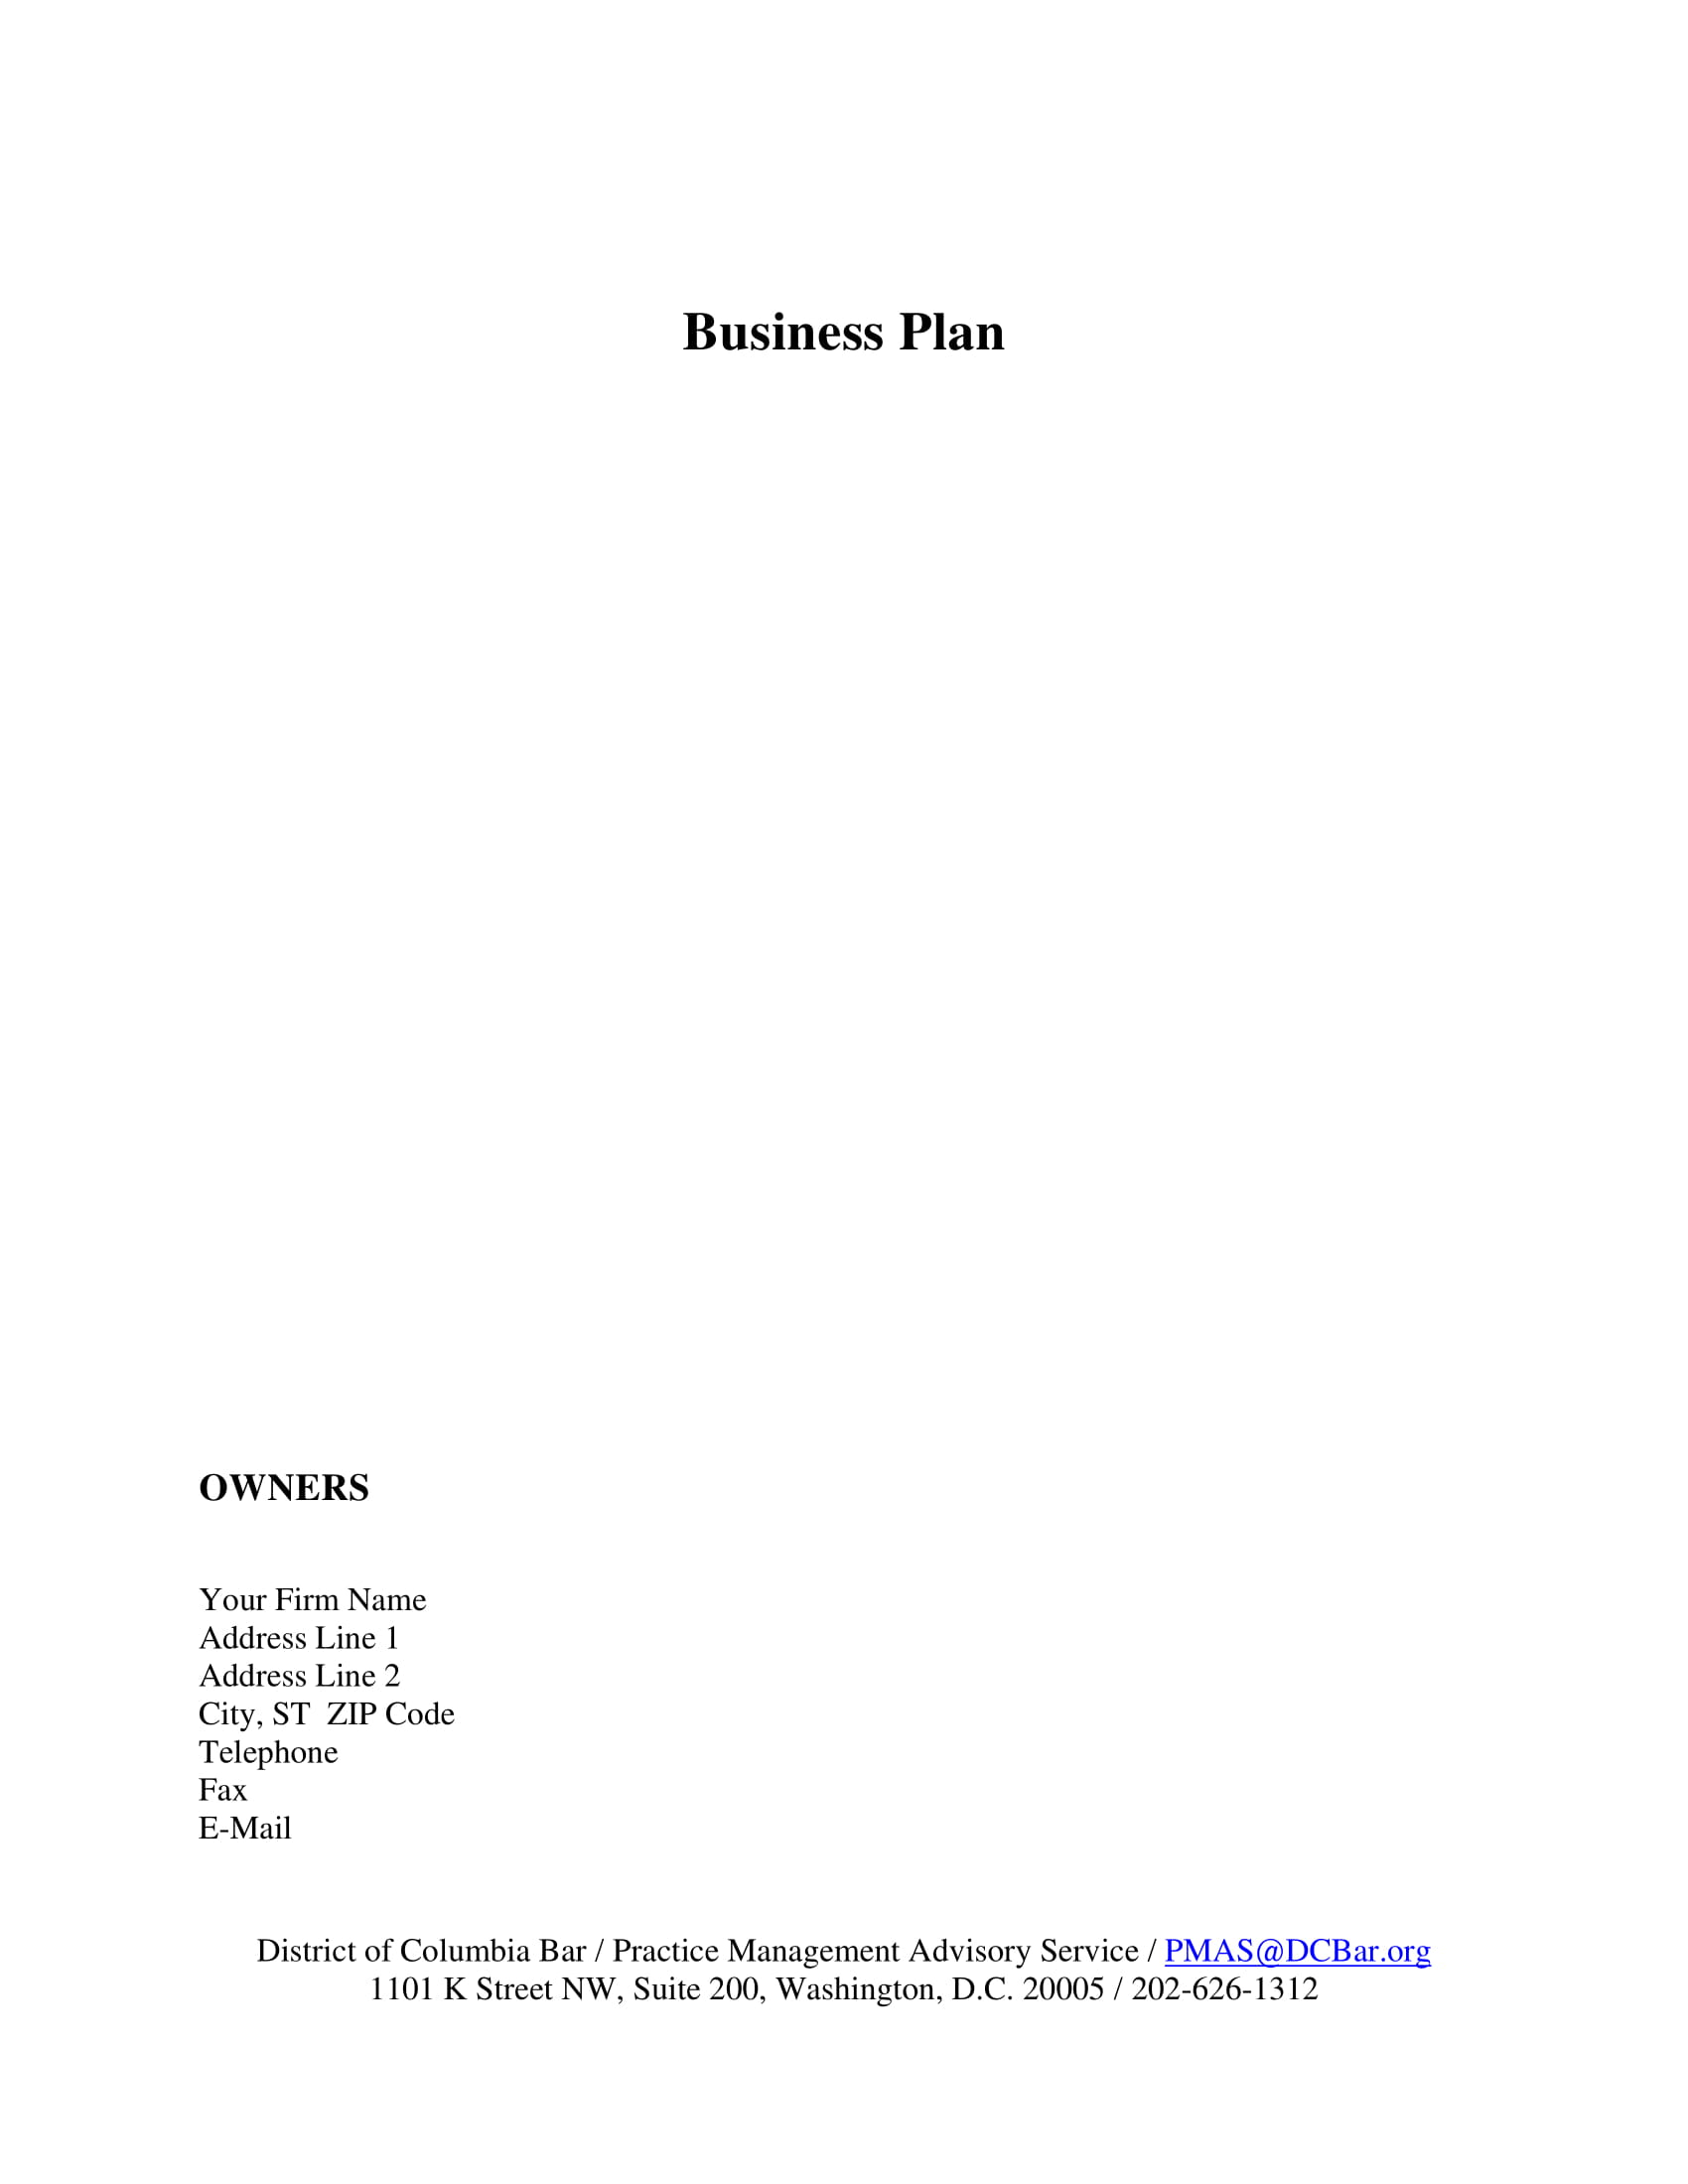 business plan and marketing guide for a starting law and accounting firm example 02